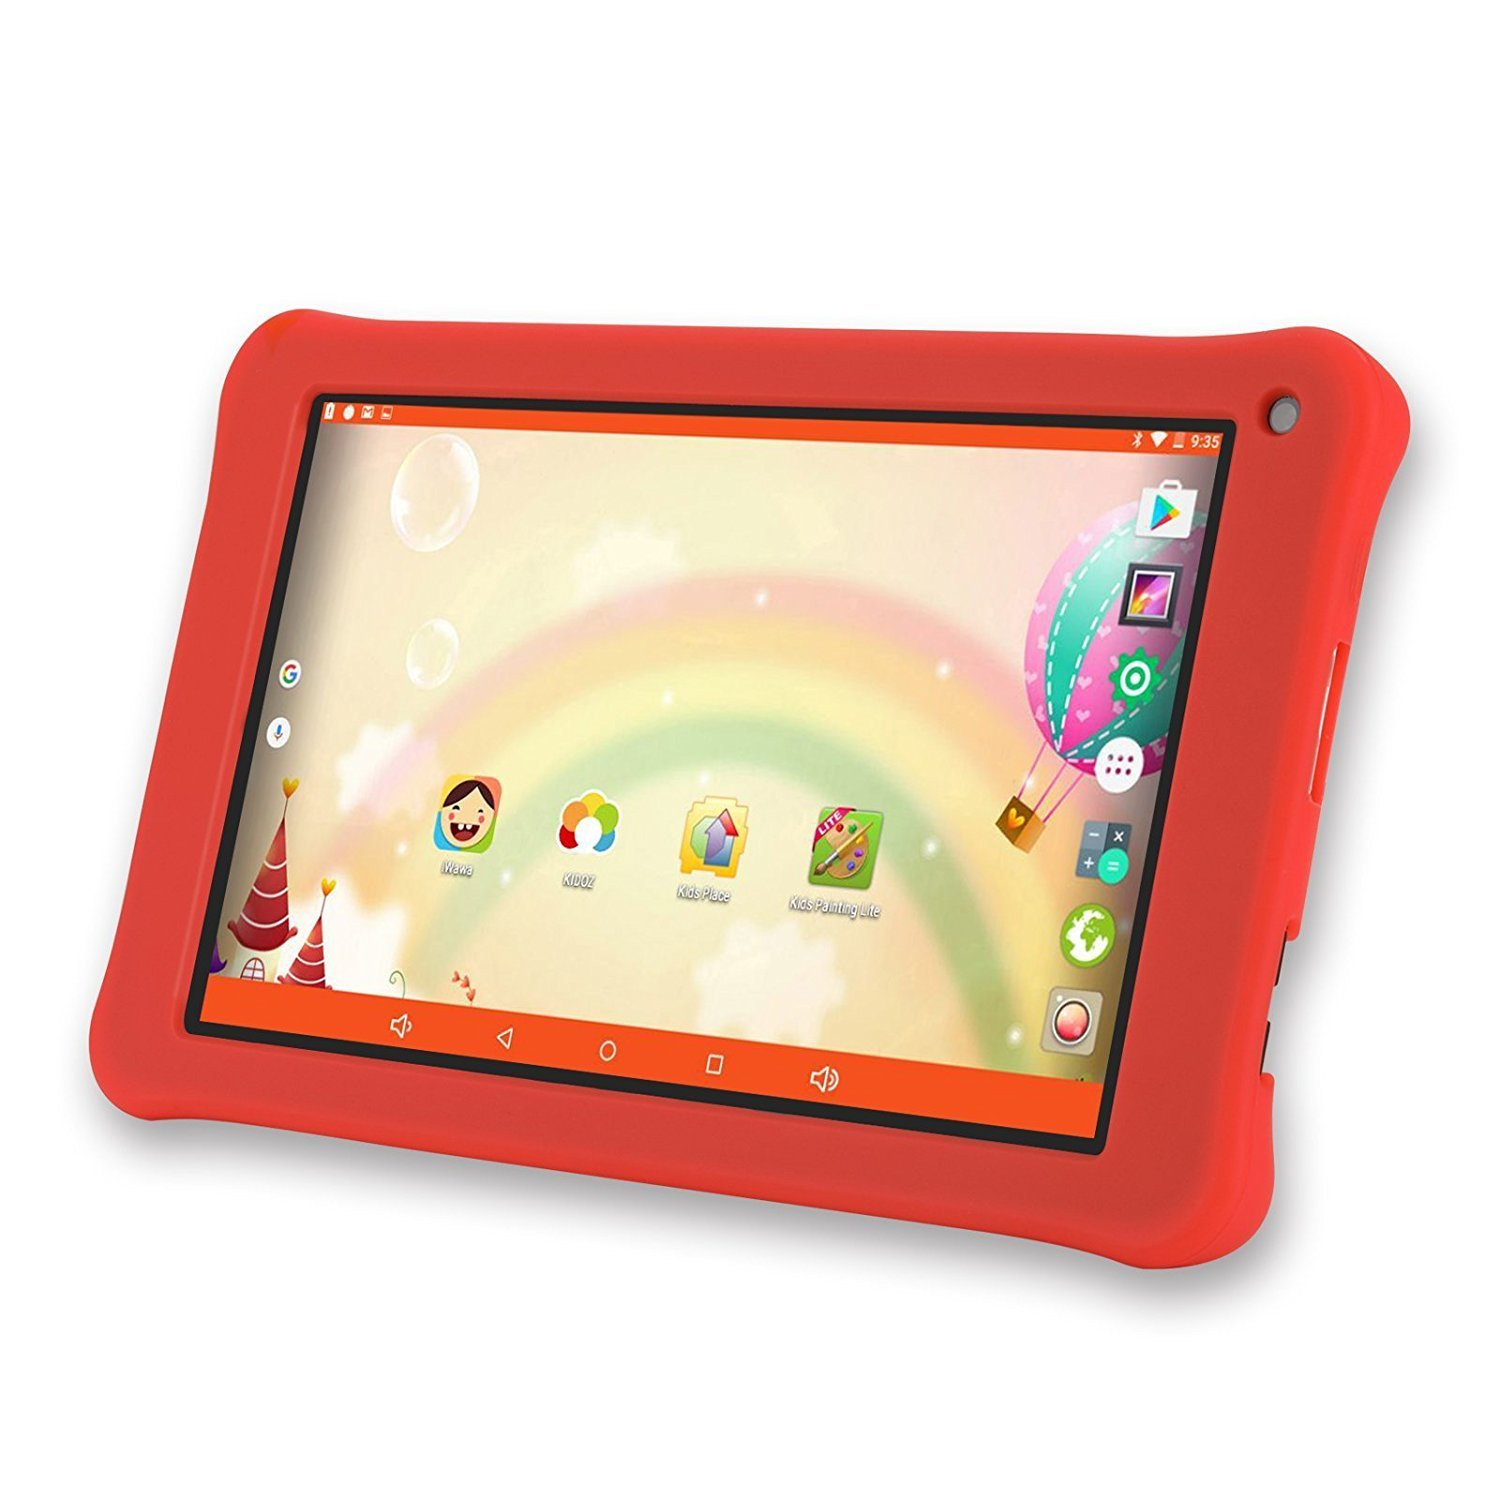 Lightstory 7 Inch kids Tablet PC